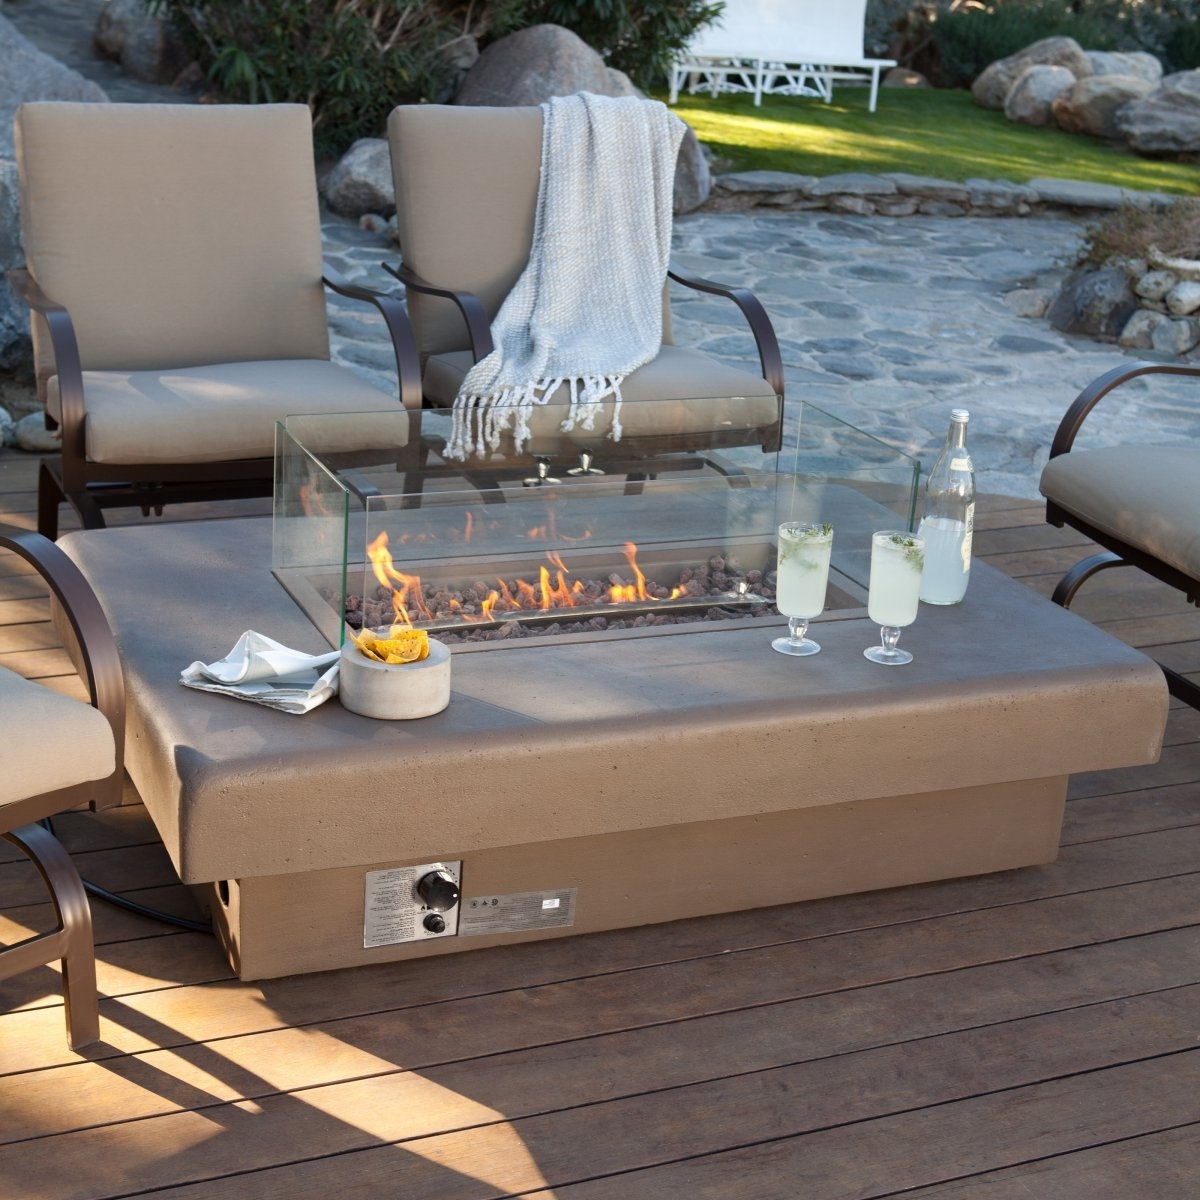 Latest Edmonton Patio Conversation Sets In Fire Pit Table For Outdoor Area — The New Way Home Decor (View 7 of 20)